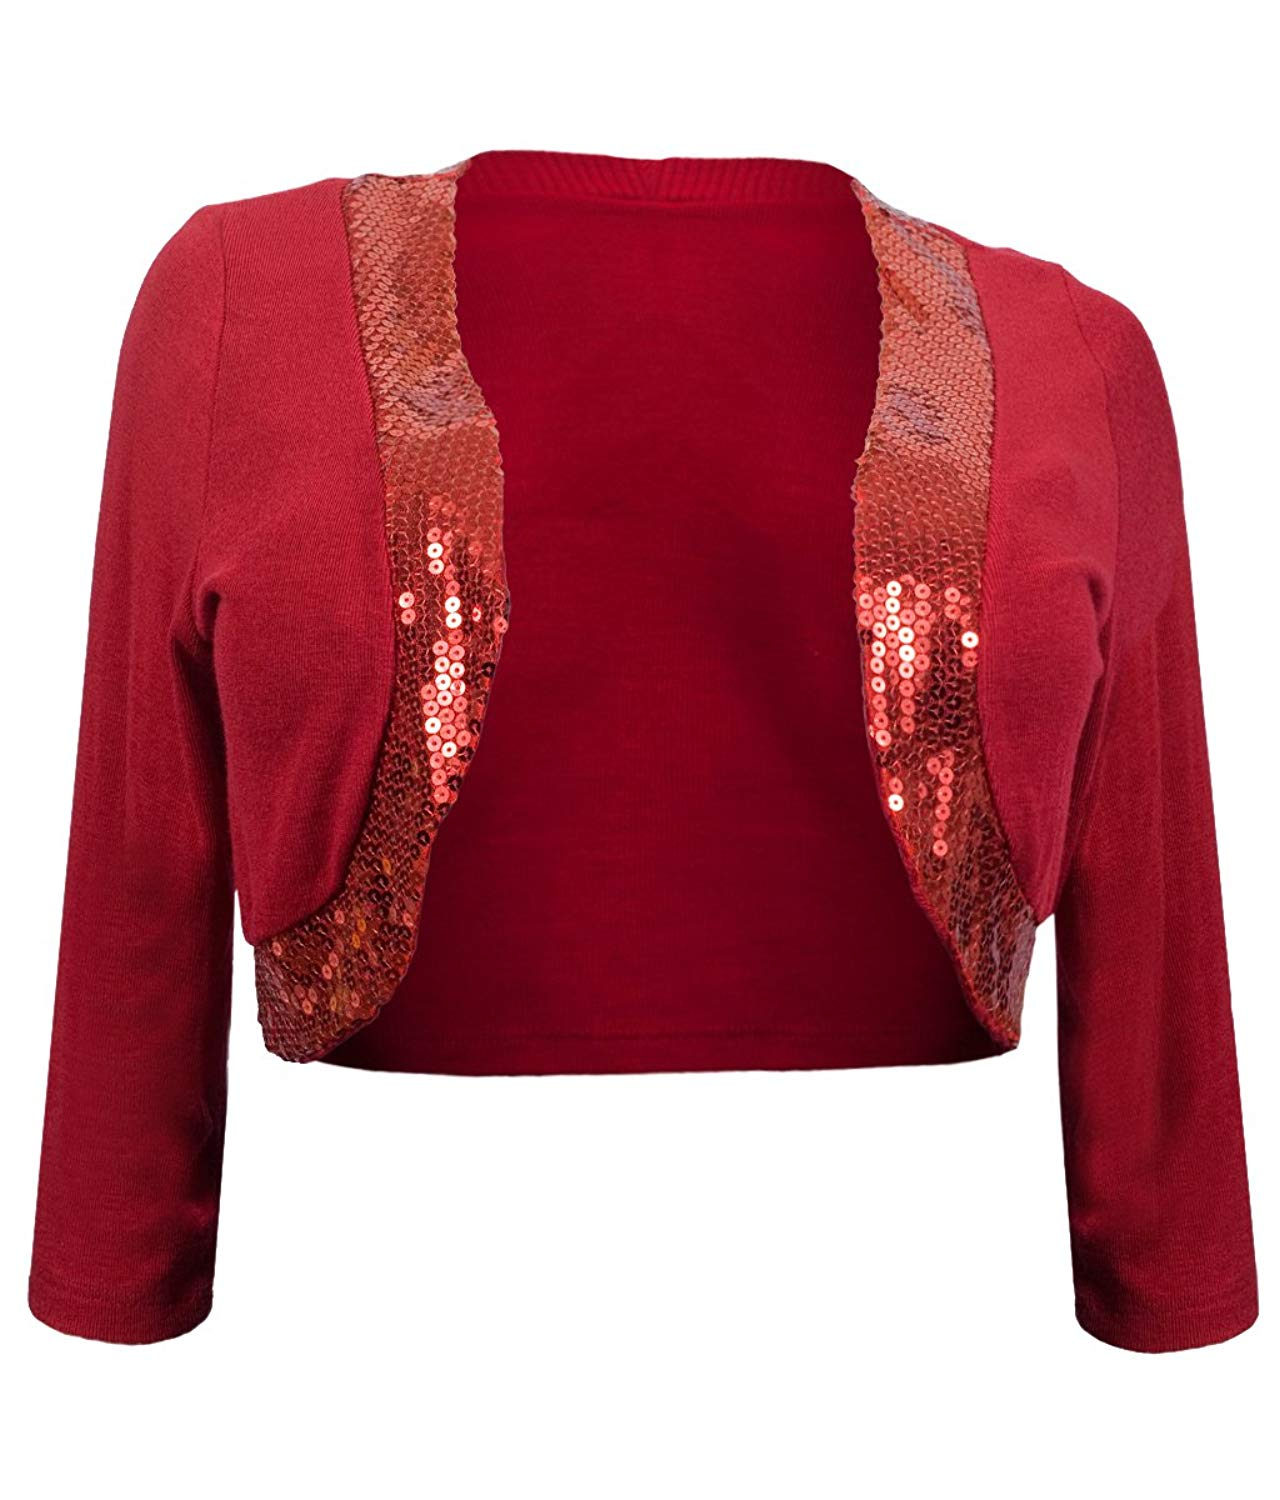 b4f22ad4a21 Get Quotations · eVogues Plus Size Sequin Trim 3 4 Sleeve Cropped Bolero  Shrug